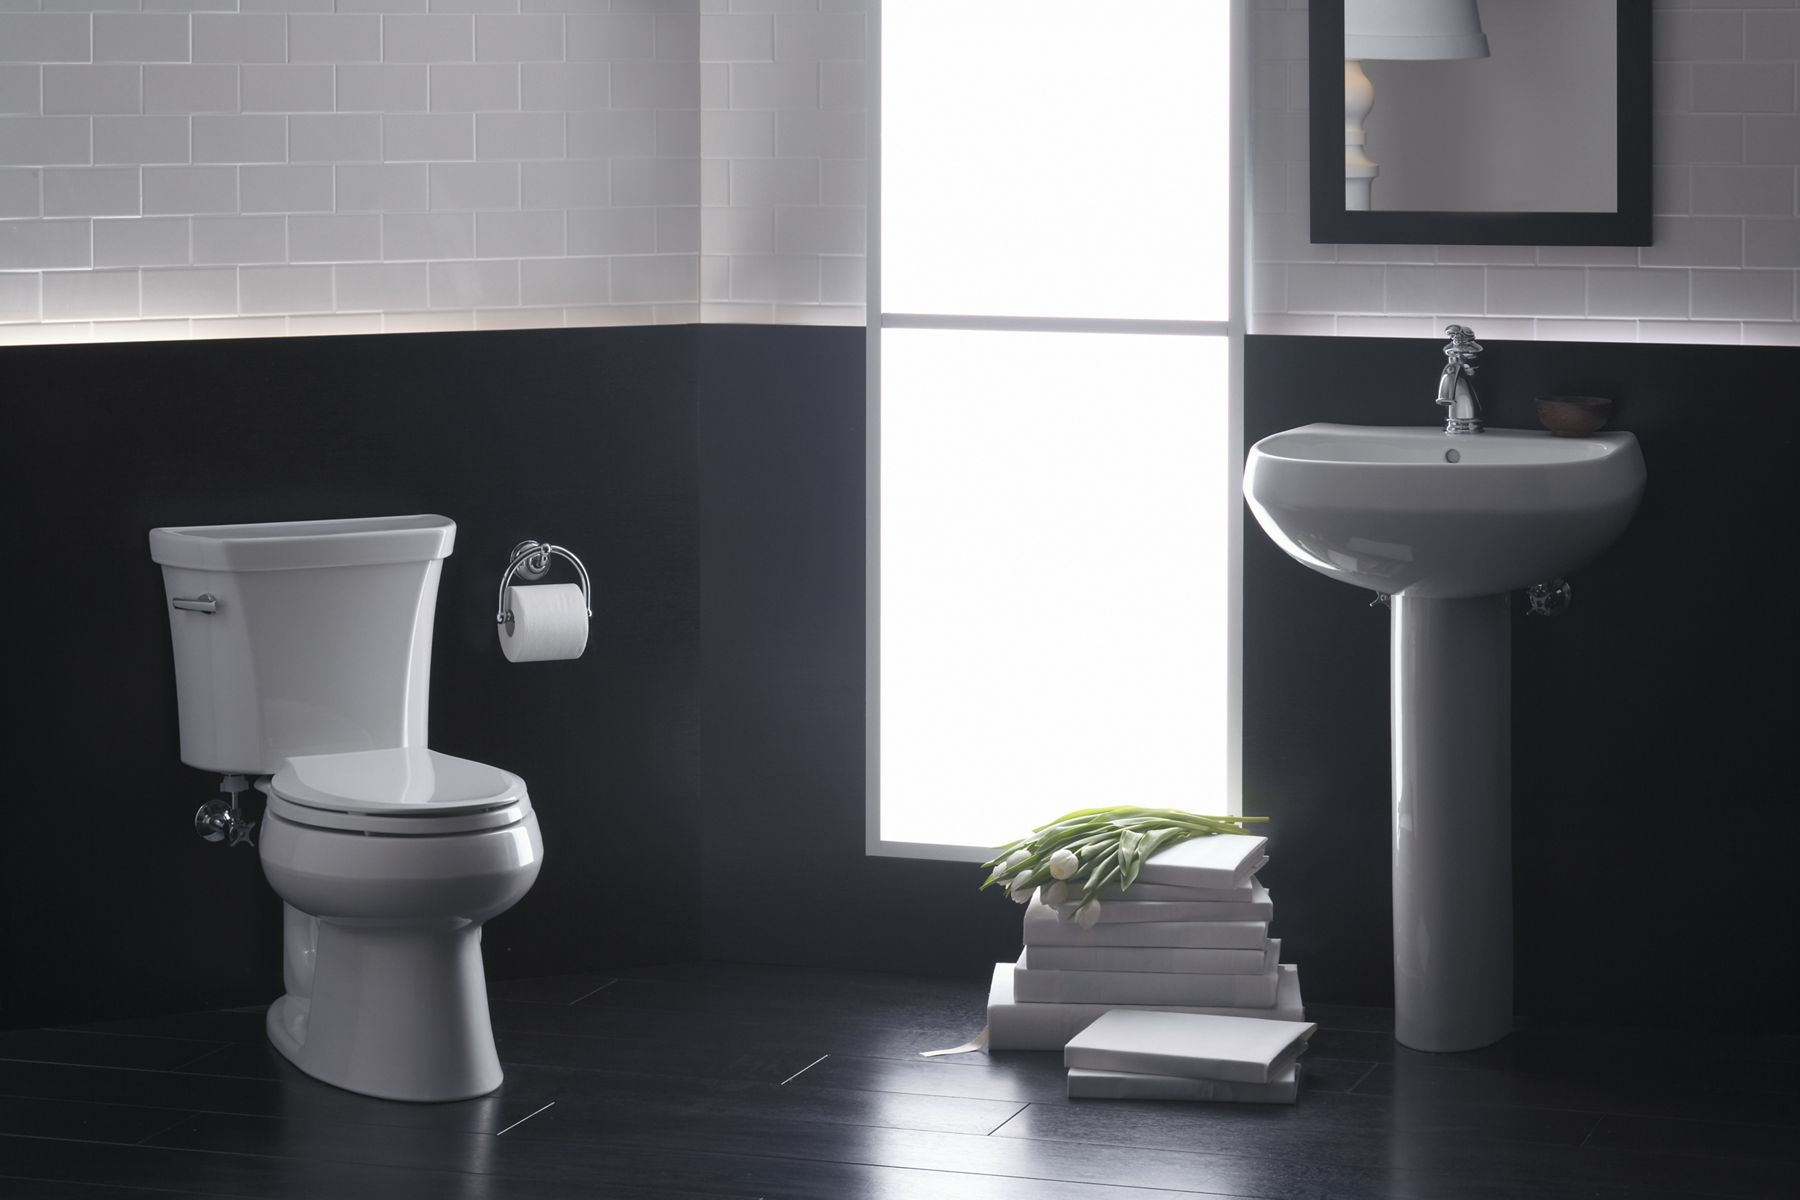 A Perfect Match, The Popular Wellworth Pedestal Sink And Toilet Combine  Great Performance With Iconic, Streamlined Style. Their Simple,  Contemporary Look ...